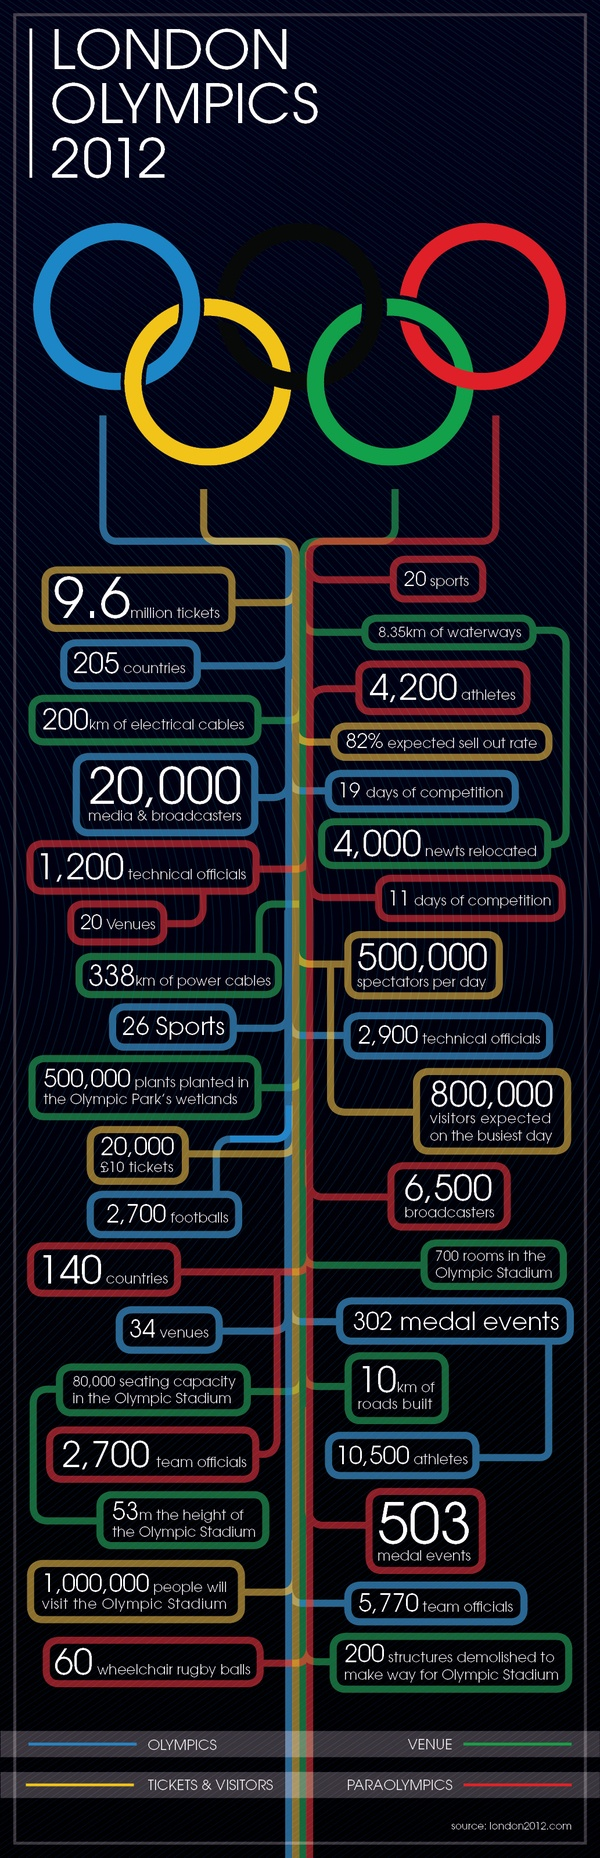 London Olympics 2012 Infographic - don't miss this!